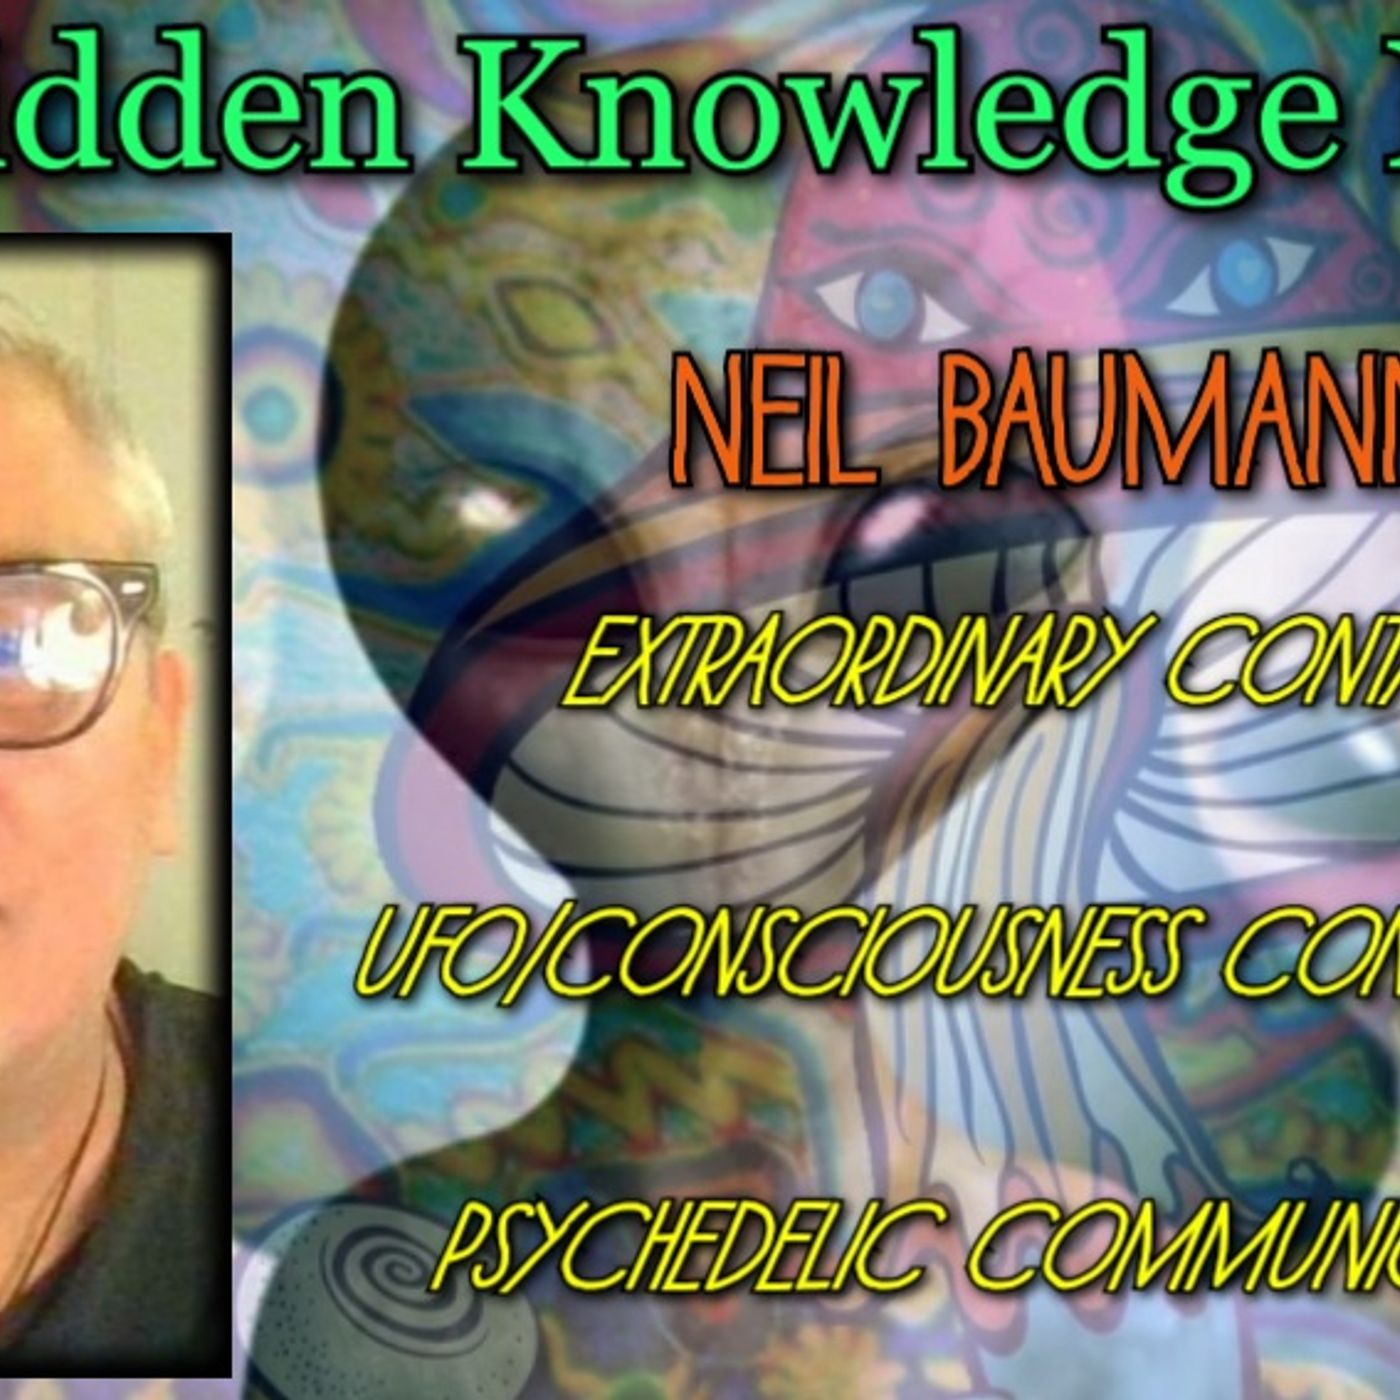 Extraordinary Contact - UFO/Consciousness Connection - Psychedelic Communication with Neil Baumann